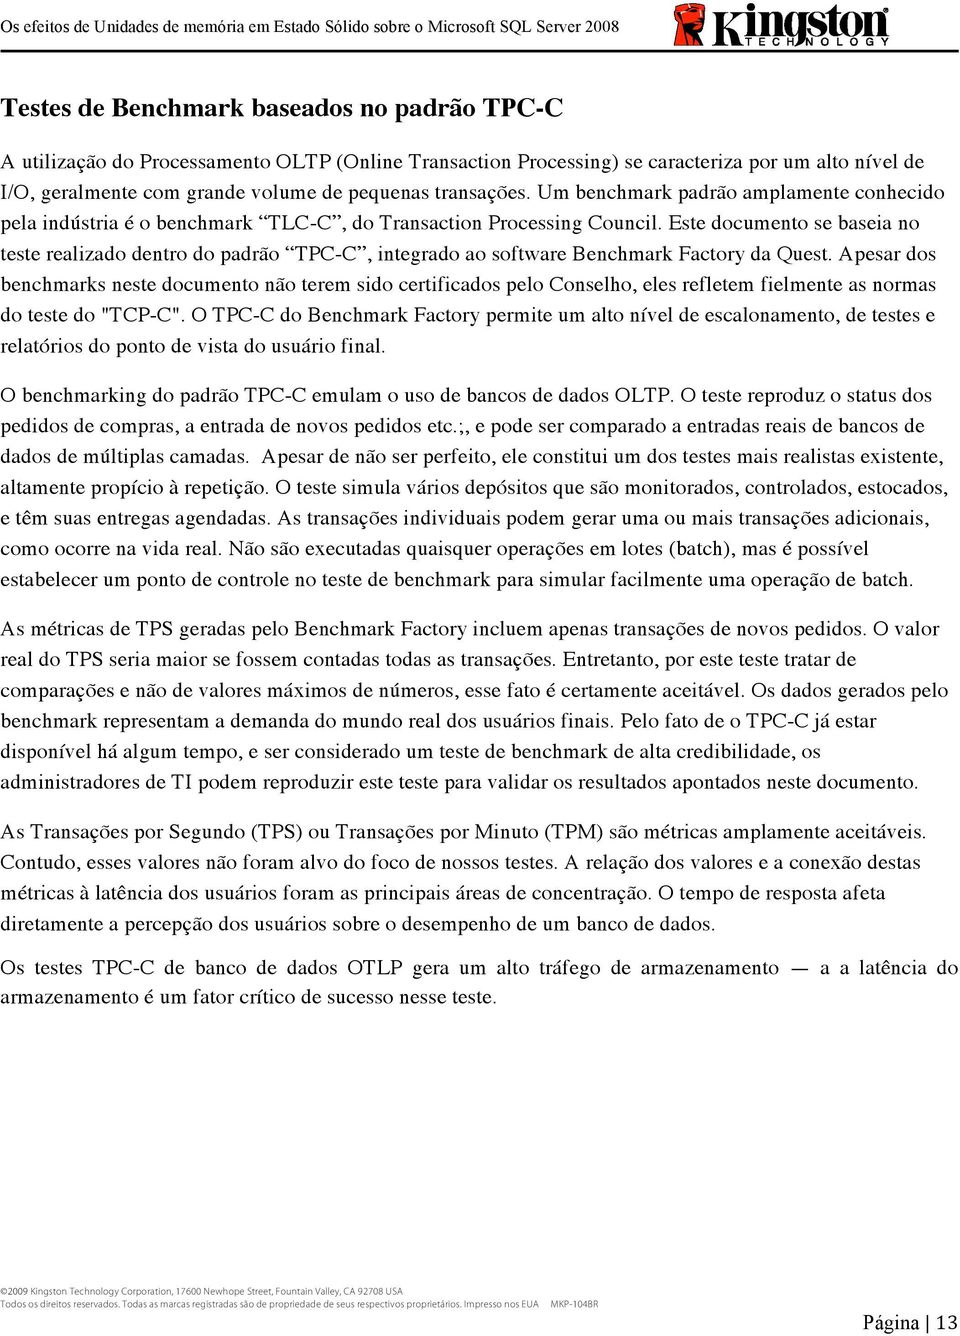 Este documento se baseia no teste realizado dentro do padrão TPC-C, integrado ao software Benchmark Factory da Quest.